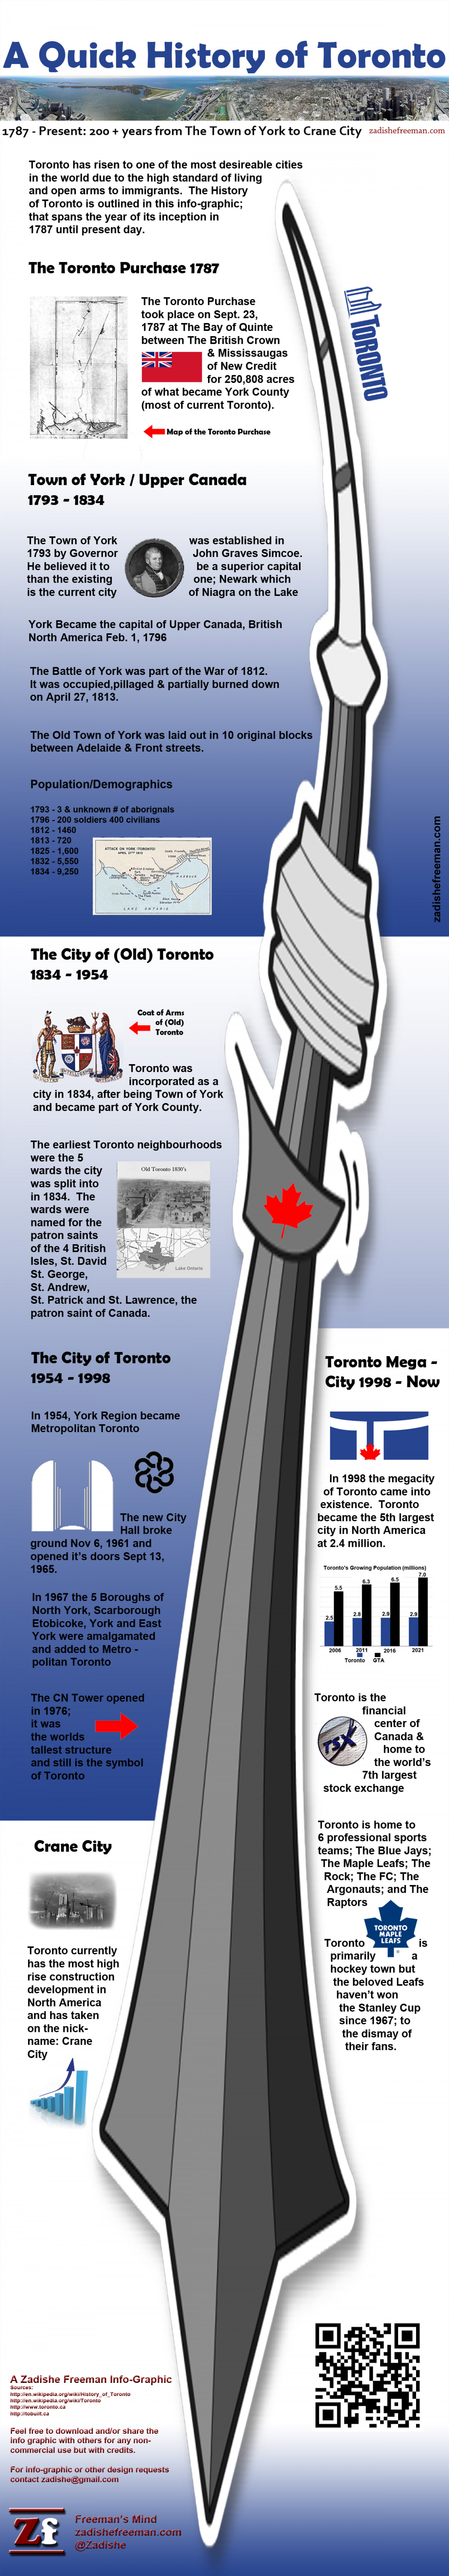 A Quick History of Toronto Infographic